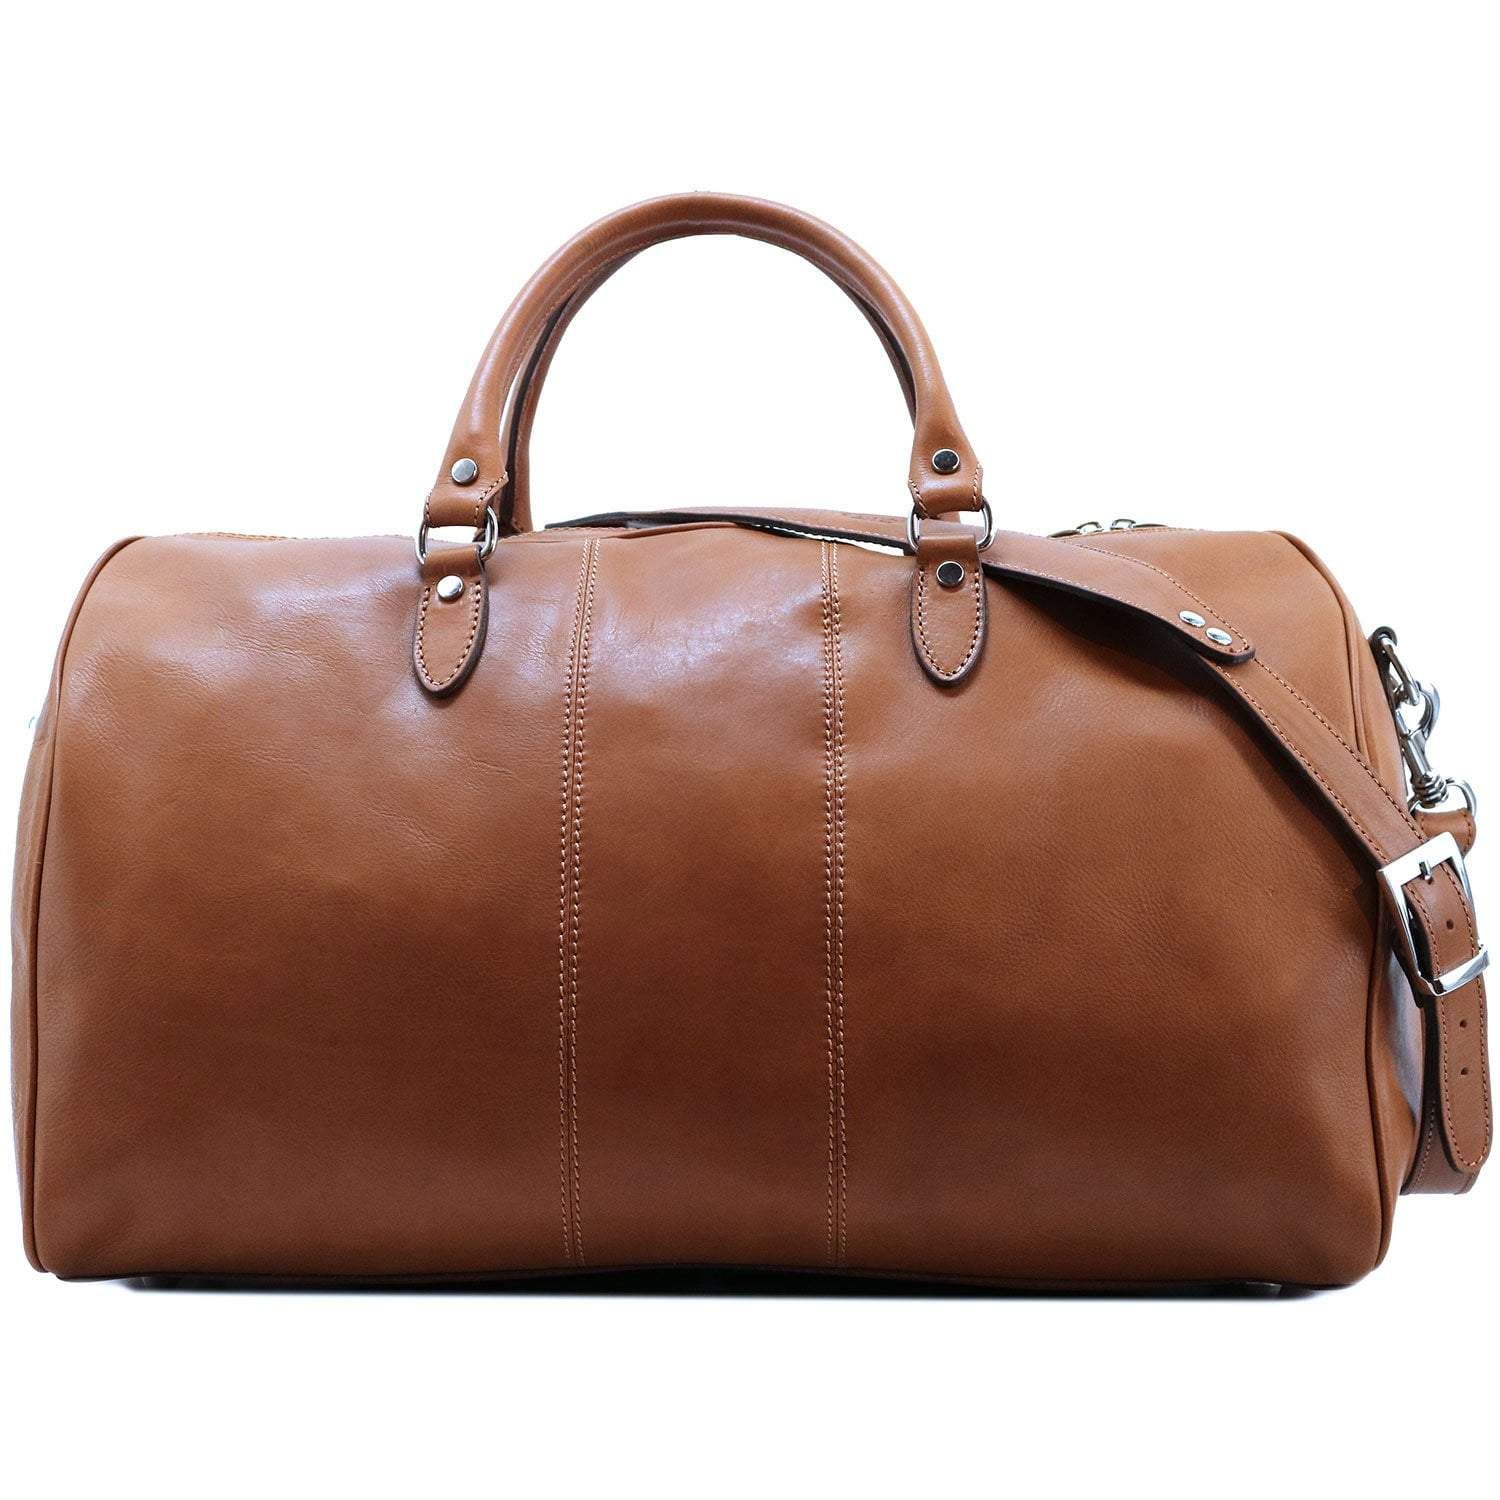 Floto Venezia Canvas and Brown Leather Travel Tote Duffle Bag